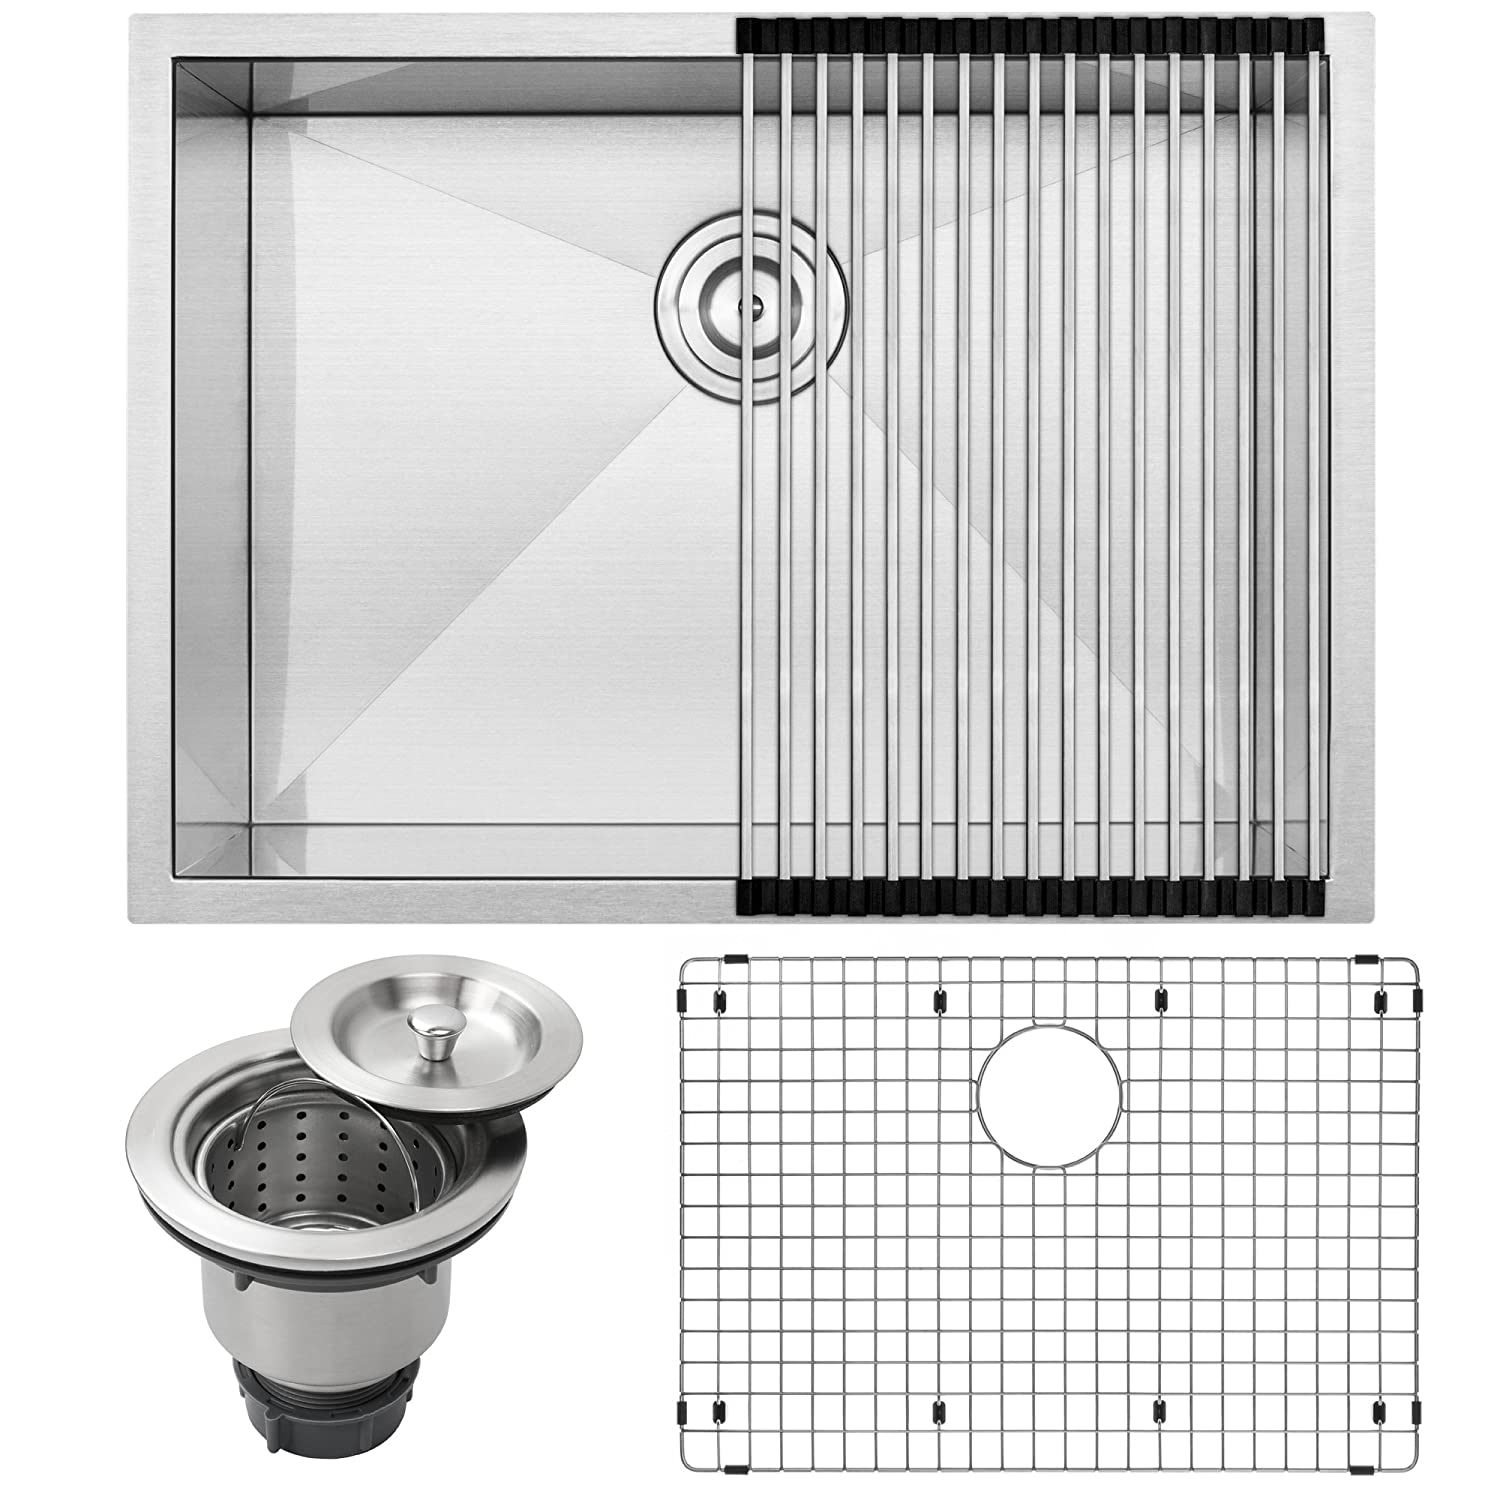 26 Ticor S3670 Pacific Series 16-Gauge Undermount Stainless Steel Single Bowl Zero Radius Square Kitchen Sink with Accessories